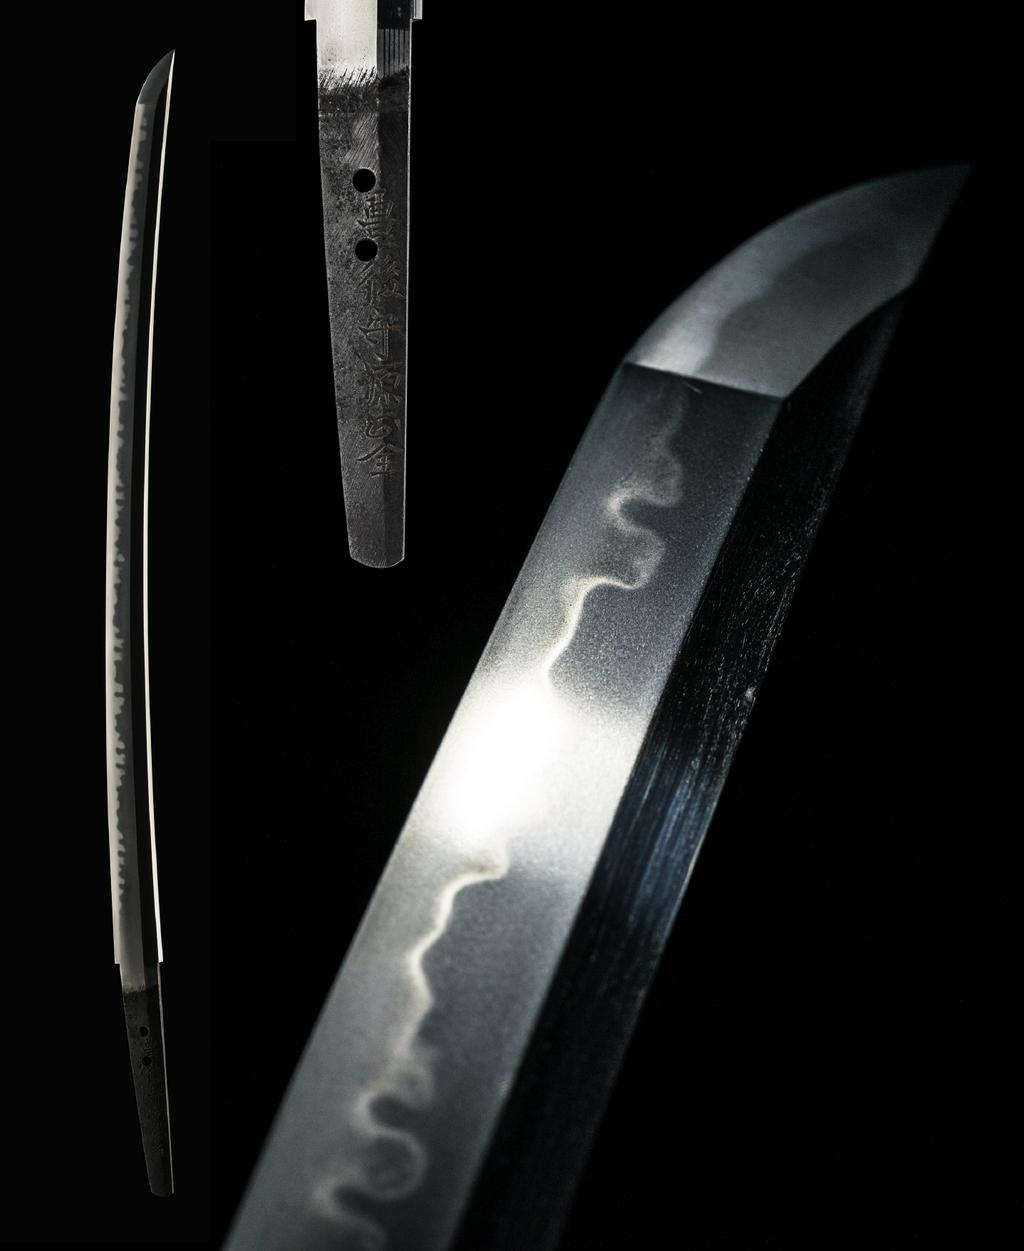 The hamon is a bright choji-midare that jumps off the blade. All hamon patterns are inherently unique, however, this temper line is one rarely seen on a sword. It s very beautiful.